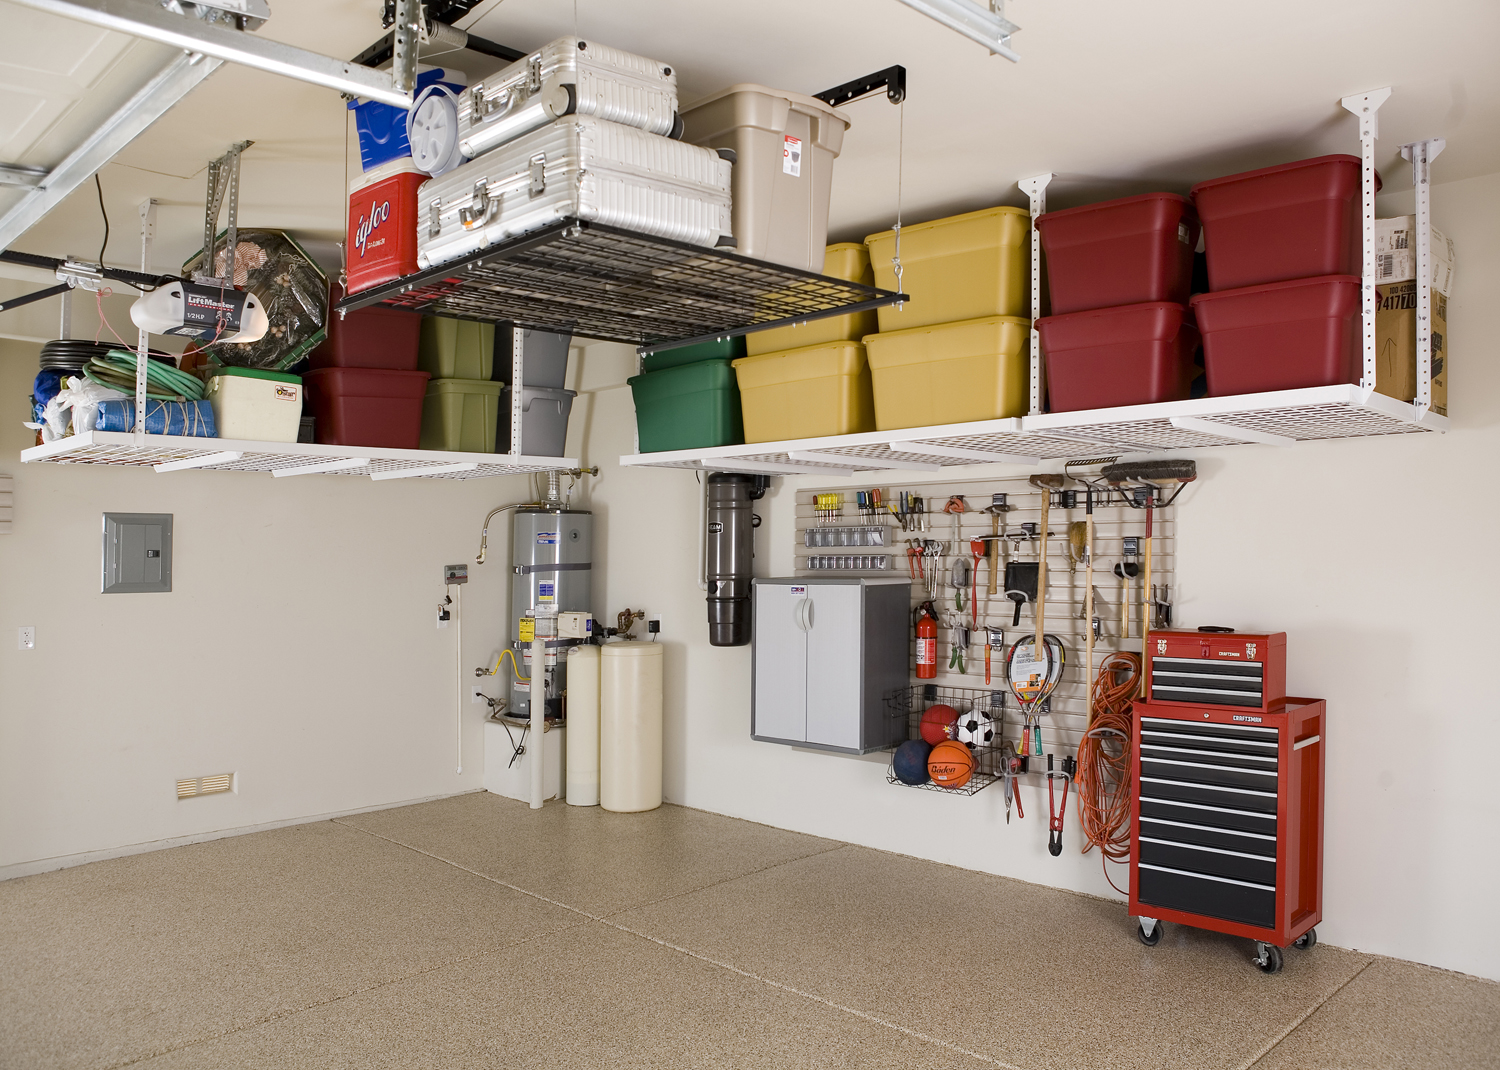 Accessories For Garage Garage Organizers Overhead Storage Racks Slatwall Wall Storage